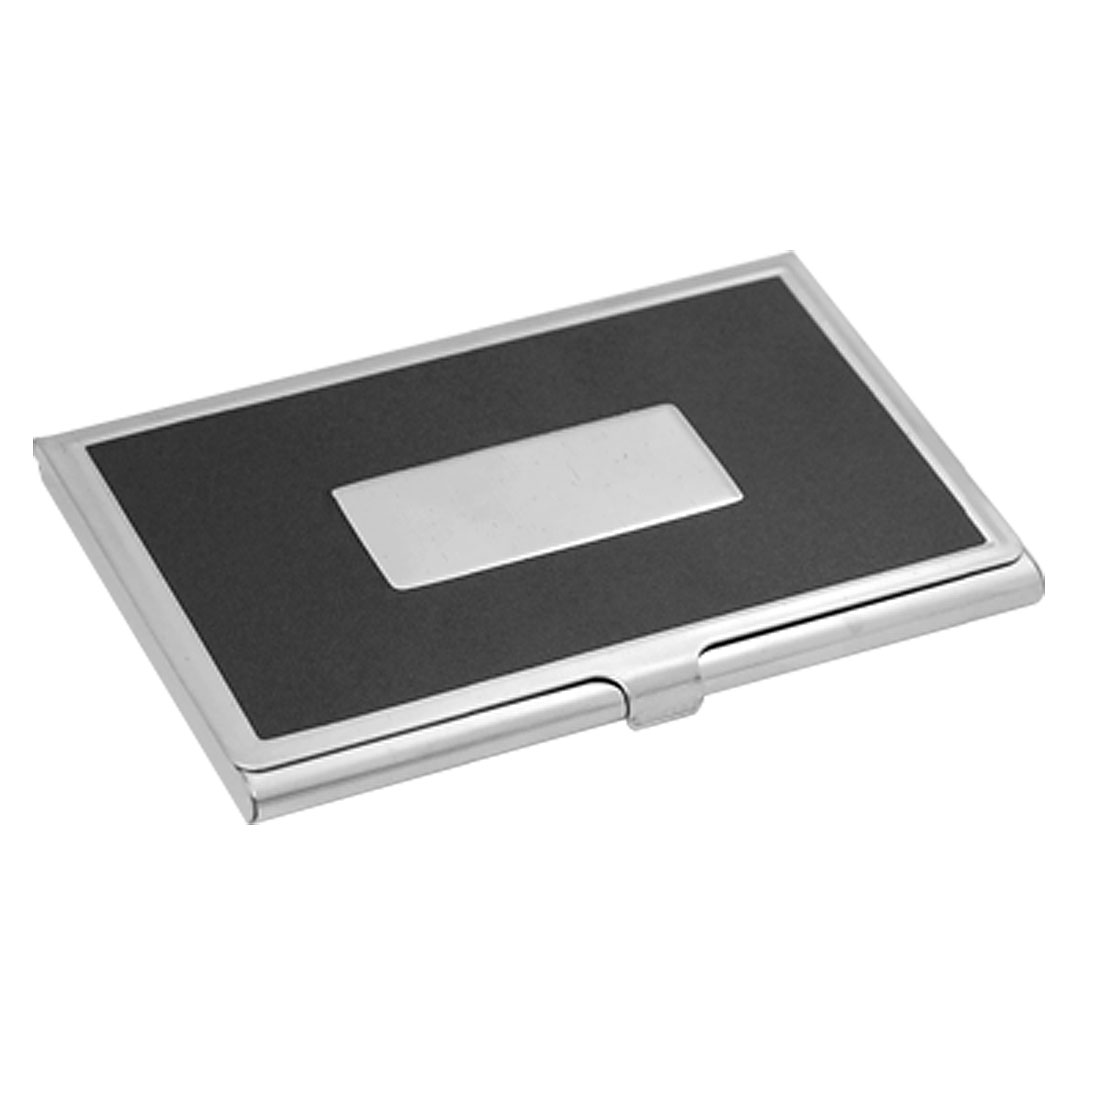 Portable Business Credit Name ID Card Case Steel Holder